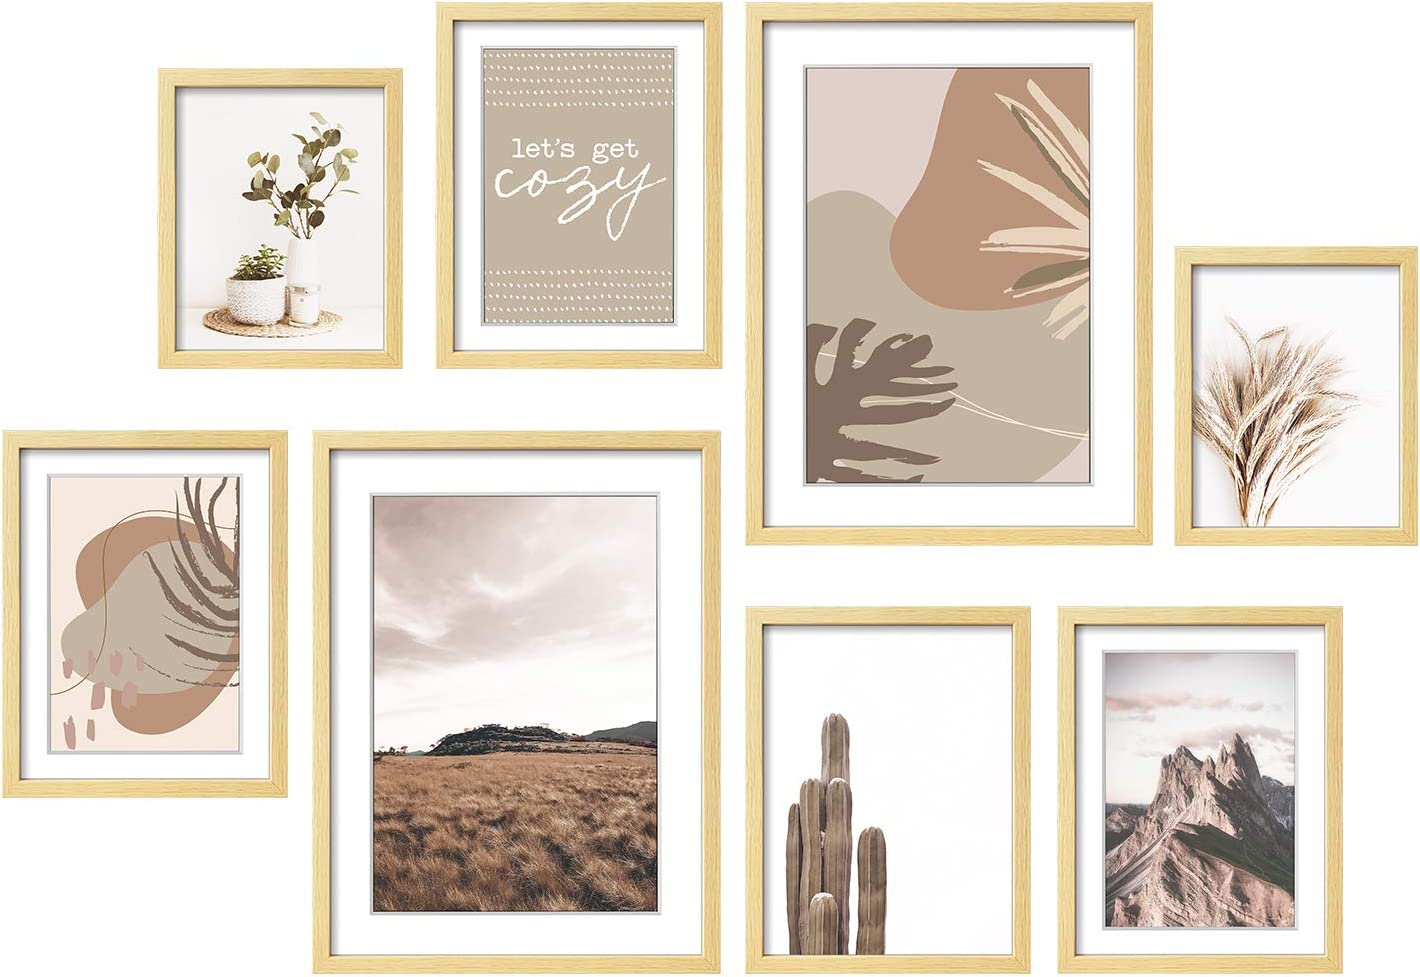 "ArtbyHannah 8 Pack Gallery Wall Kit Decorative Art Prints Picture Frame Collage Wall Art Decor & Hanging Template Picture Frame Set for Home Decoration,Multi Size 12"" x 16"",8"" x 10"",6"" x 8"""